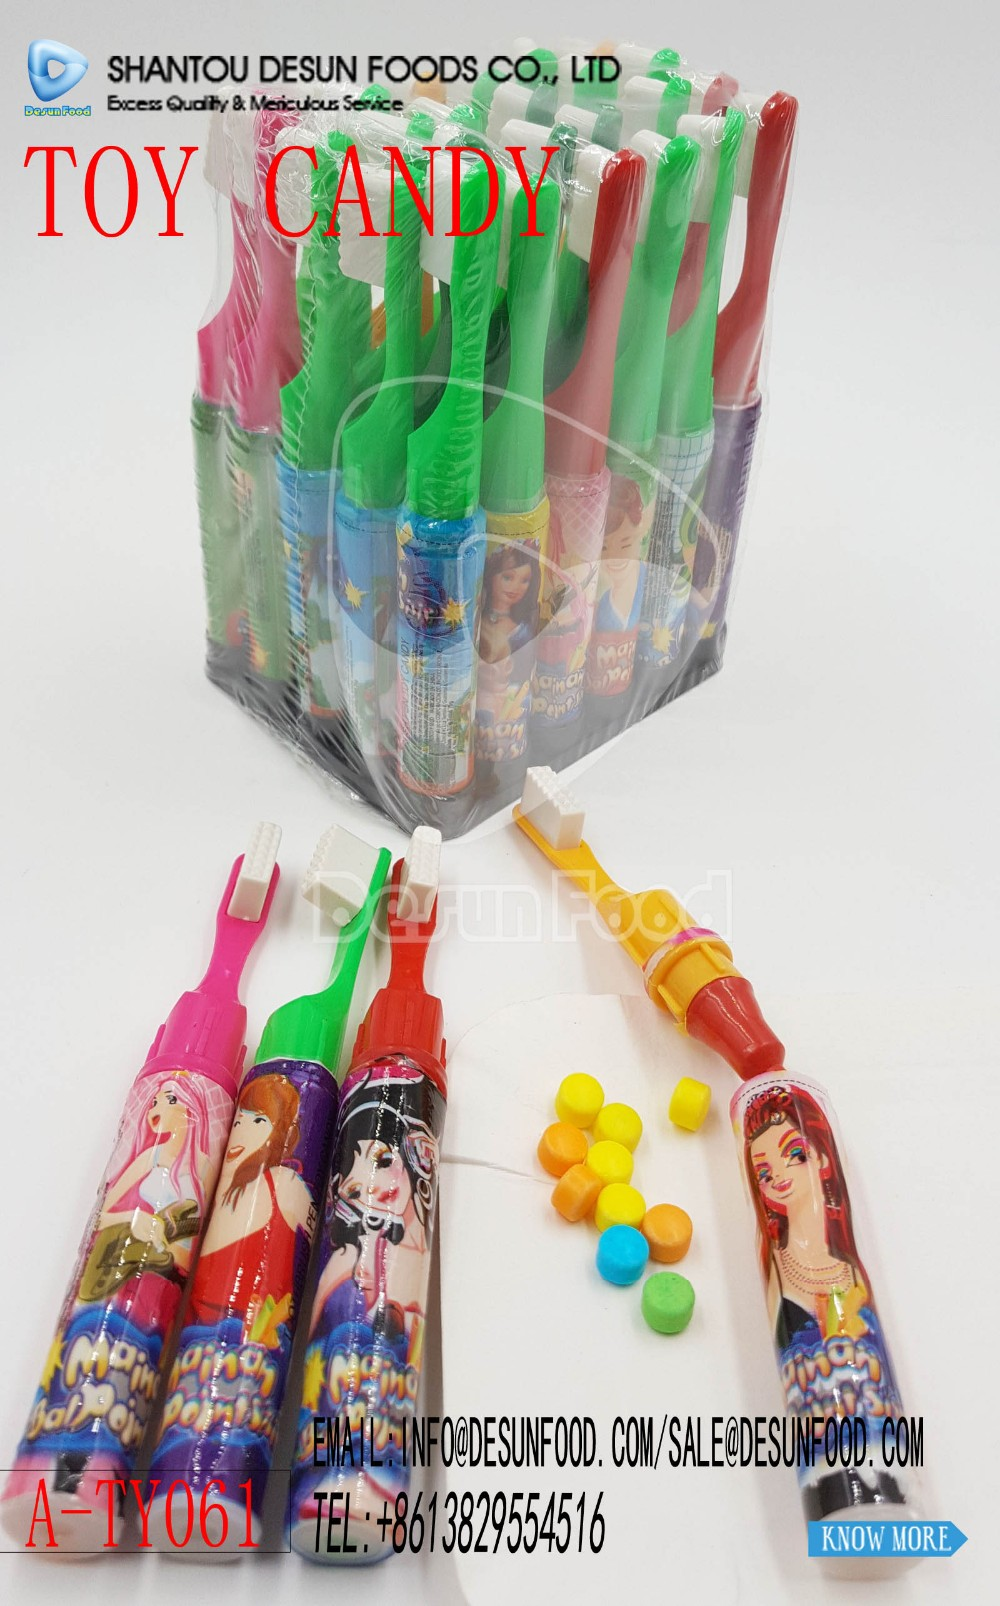 Toothbrush Pen Toy Candy toy